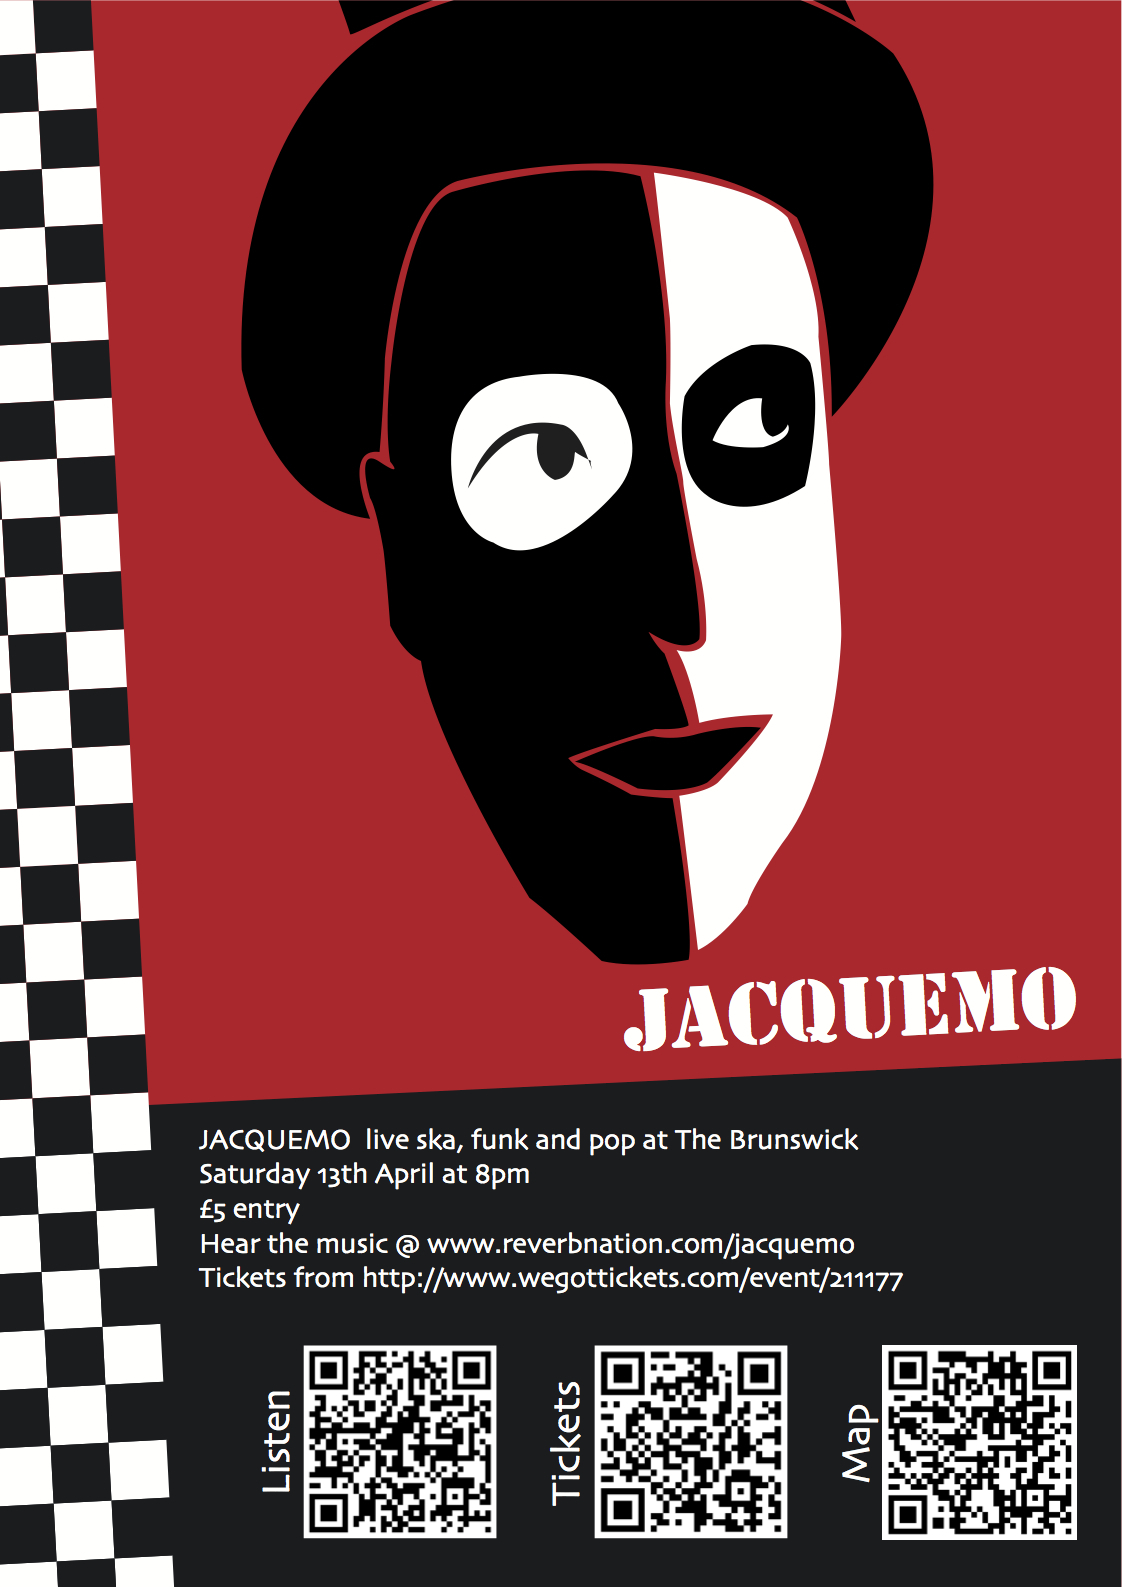 Jacquemo-Poster-Jan-12-2013-002aA3 copy